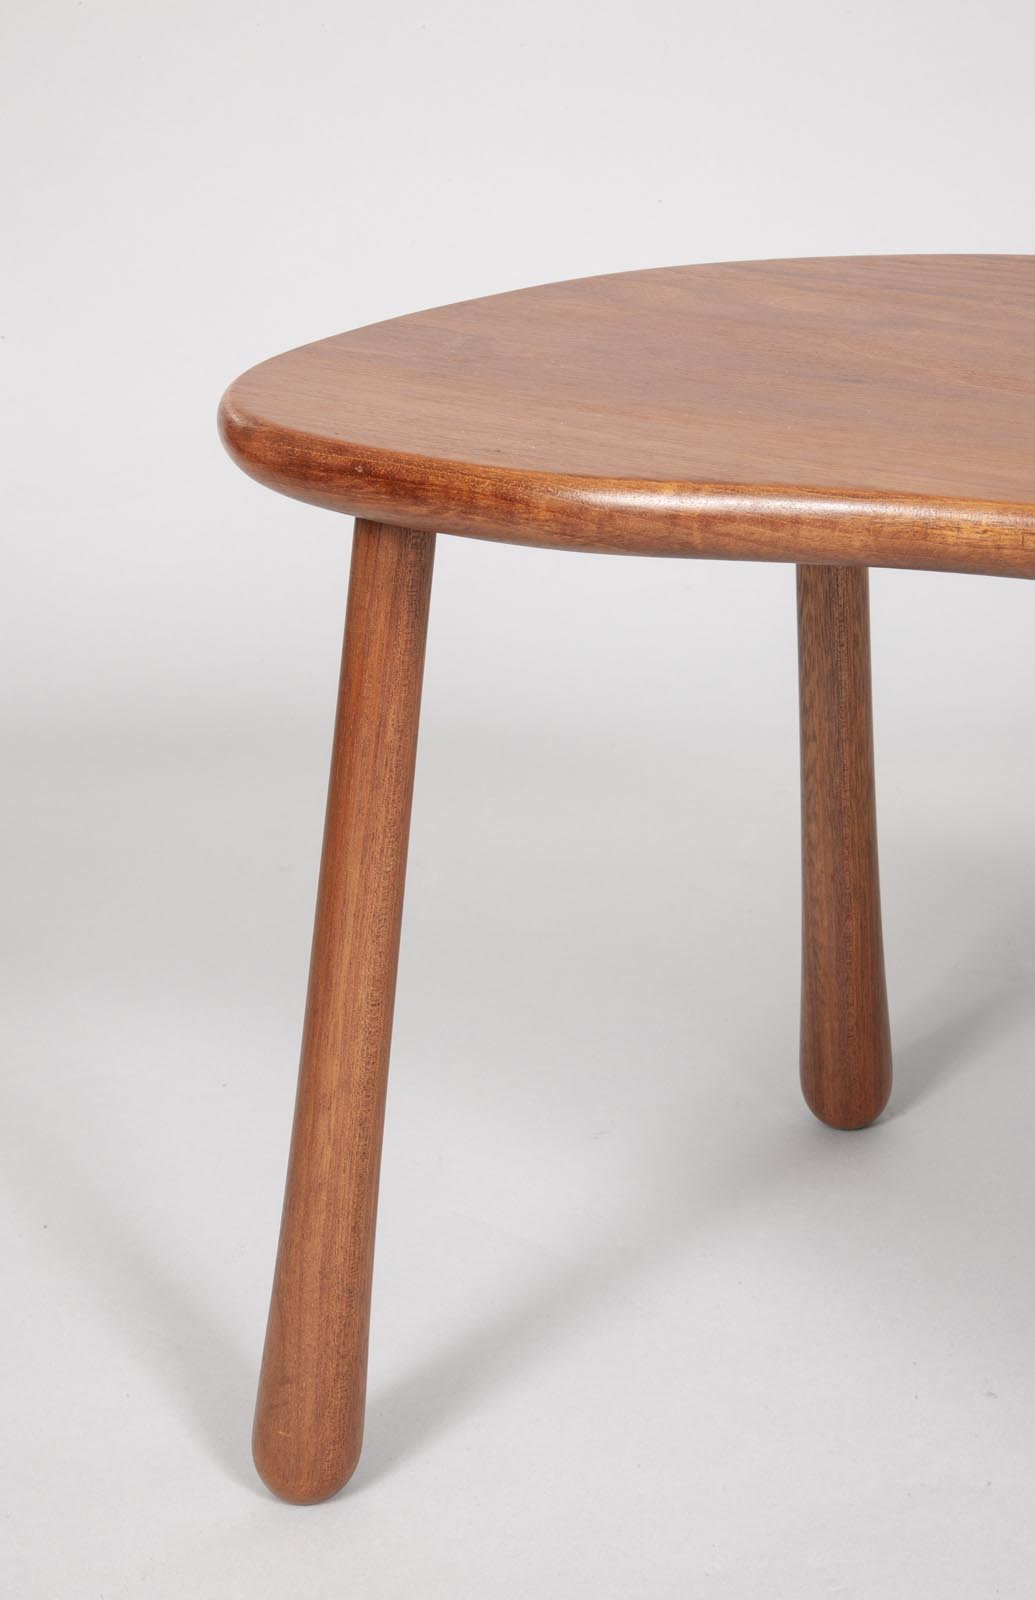 Josef Frank mahogany table / stool